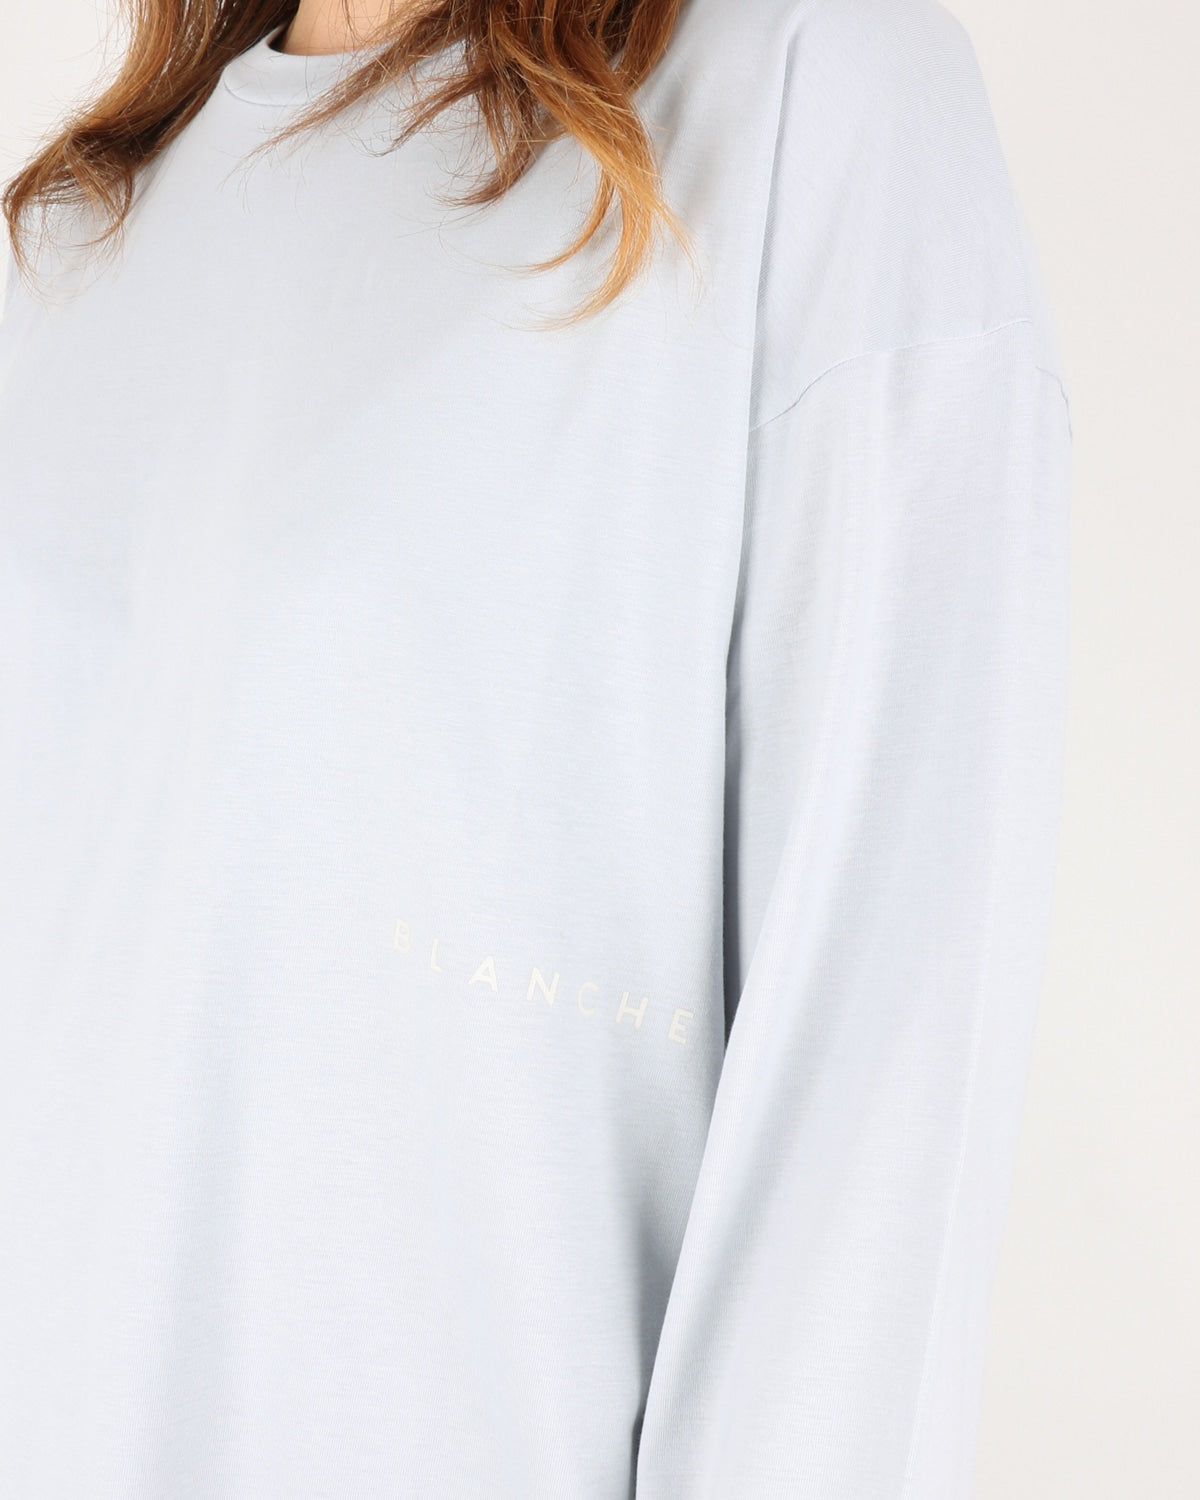 blanche_main light longsleeve_arctic ice_3_4